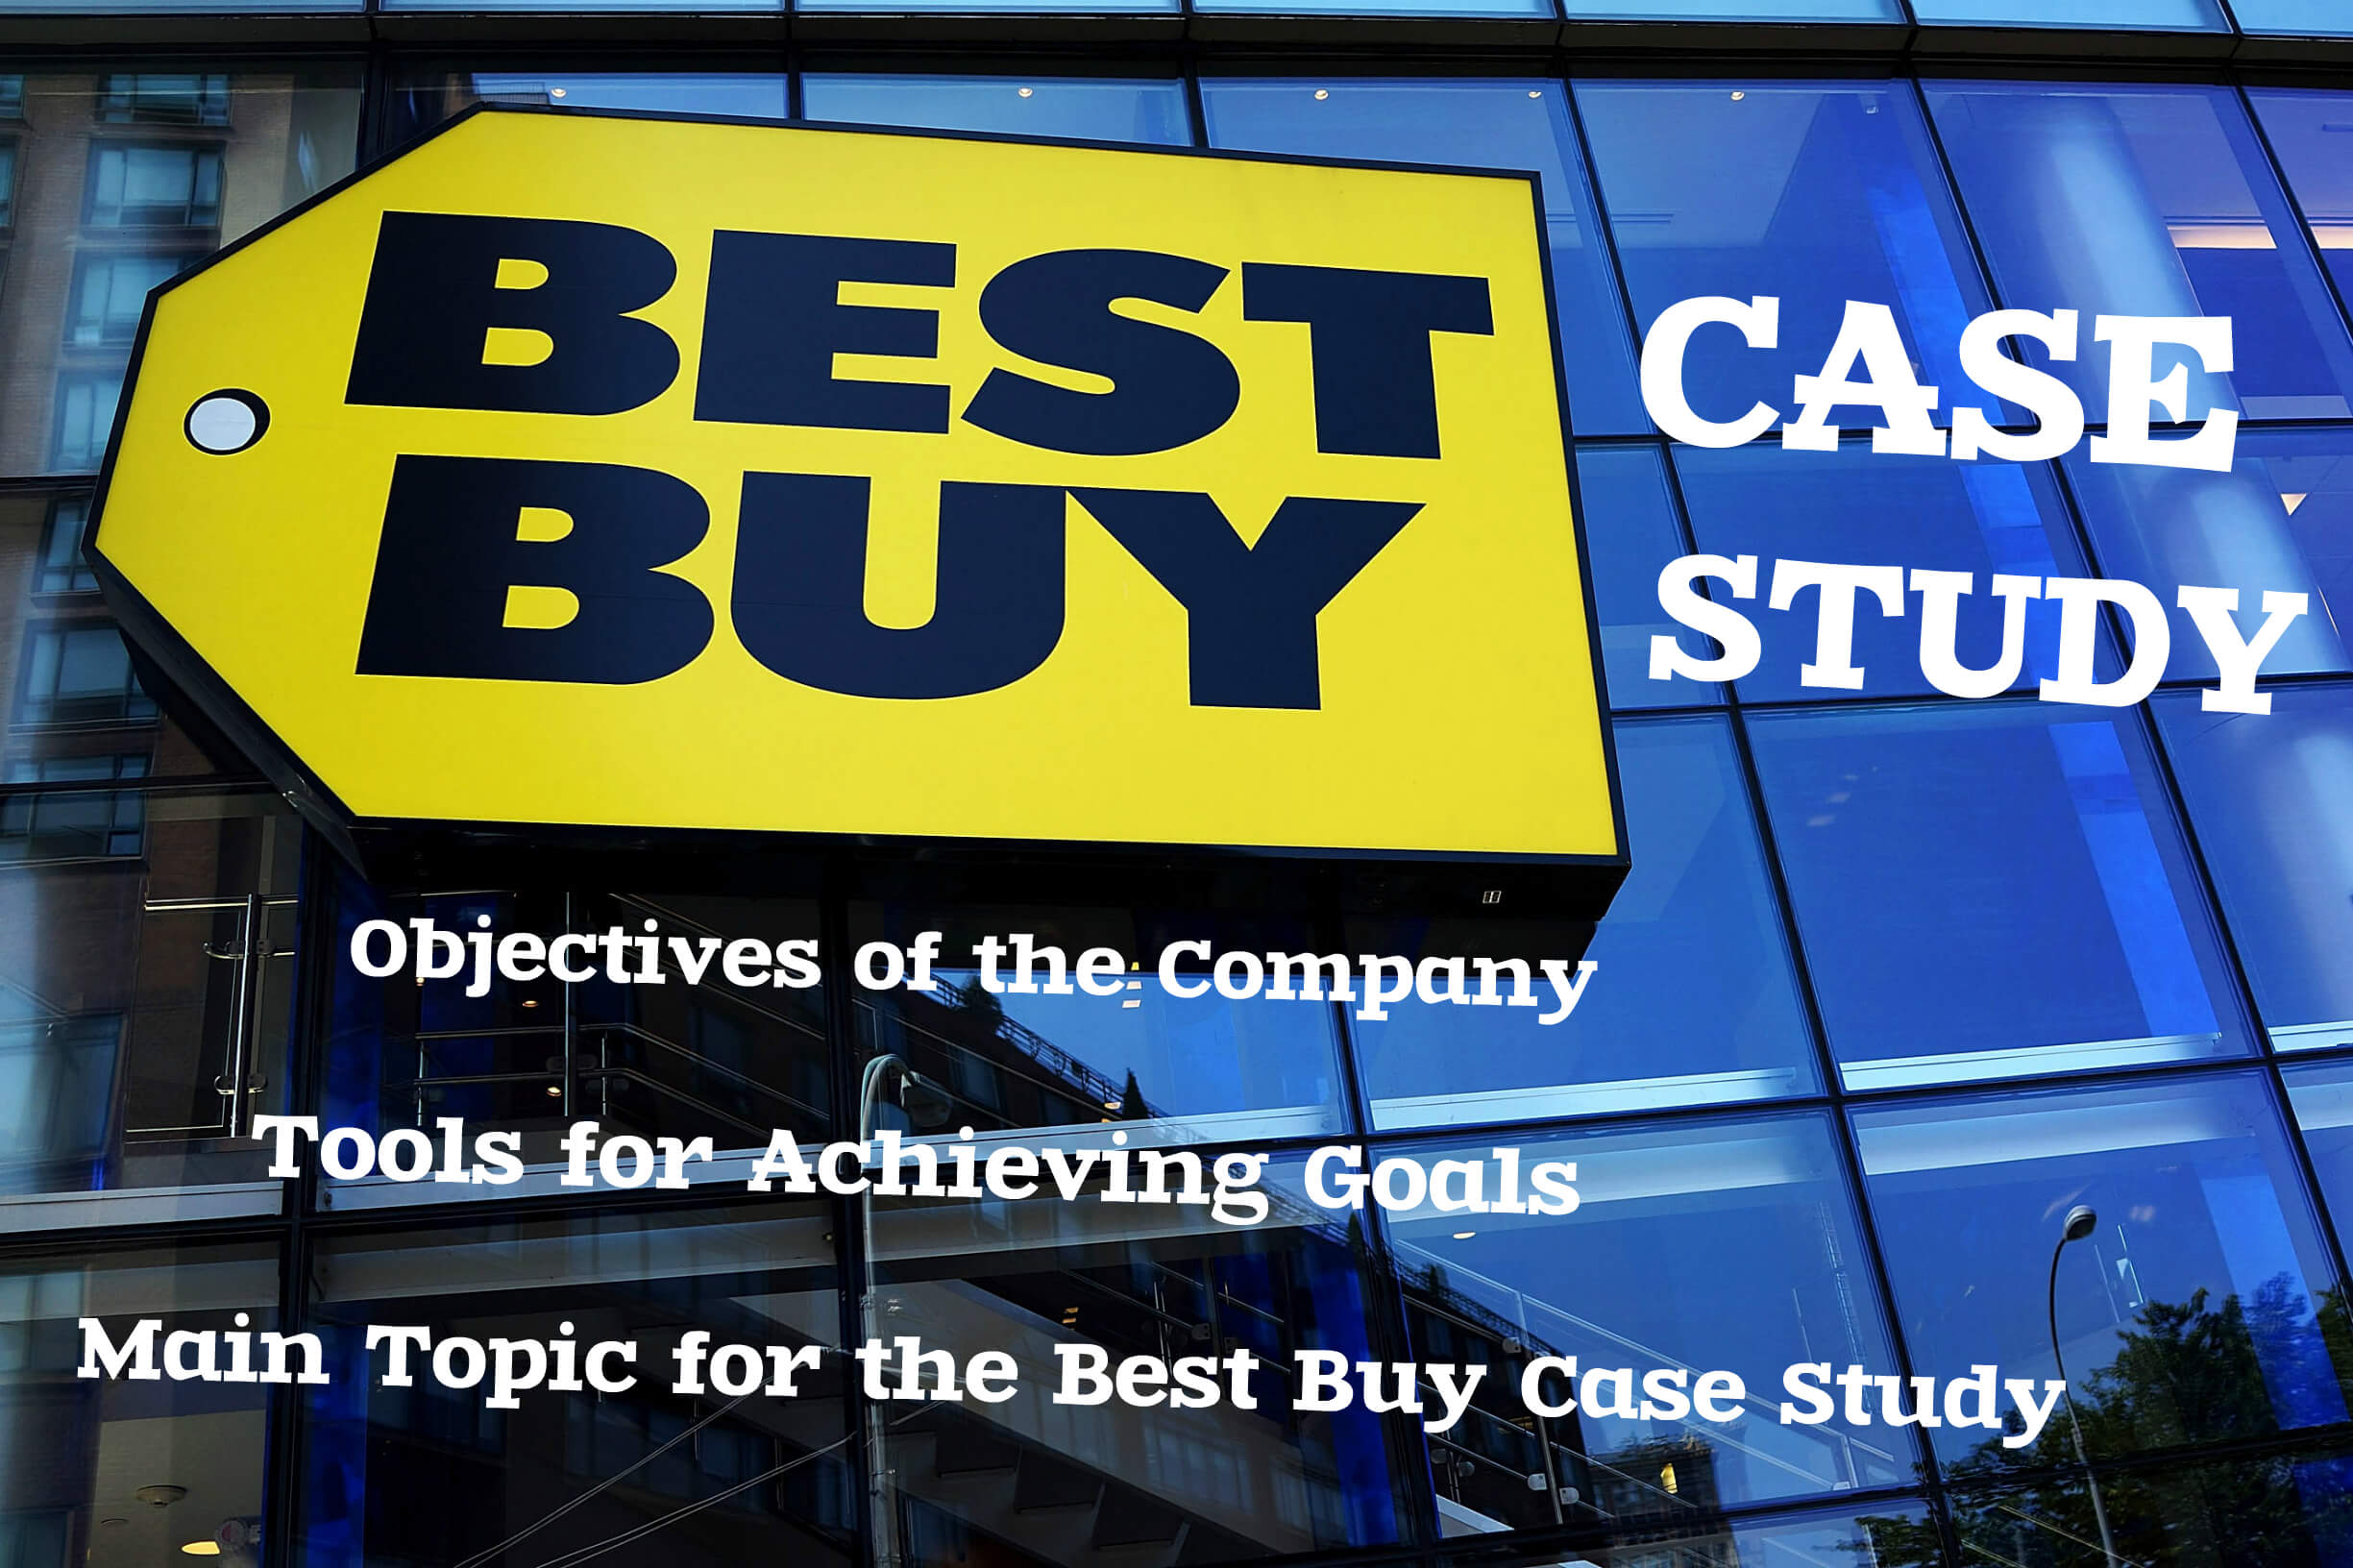 Best Buy Business Strategy Case Study